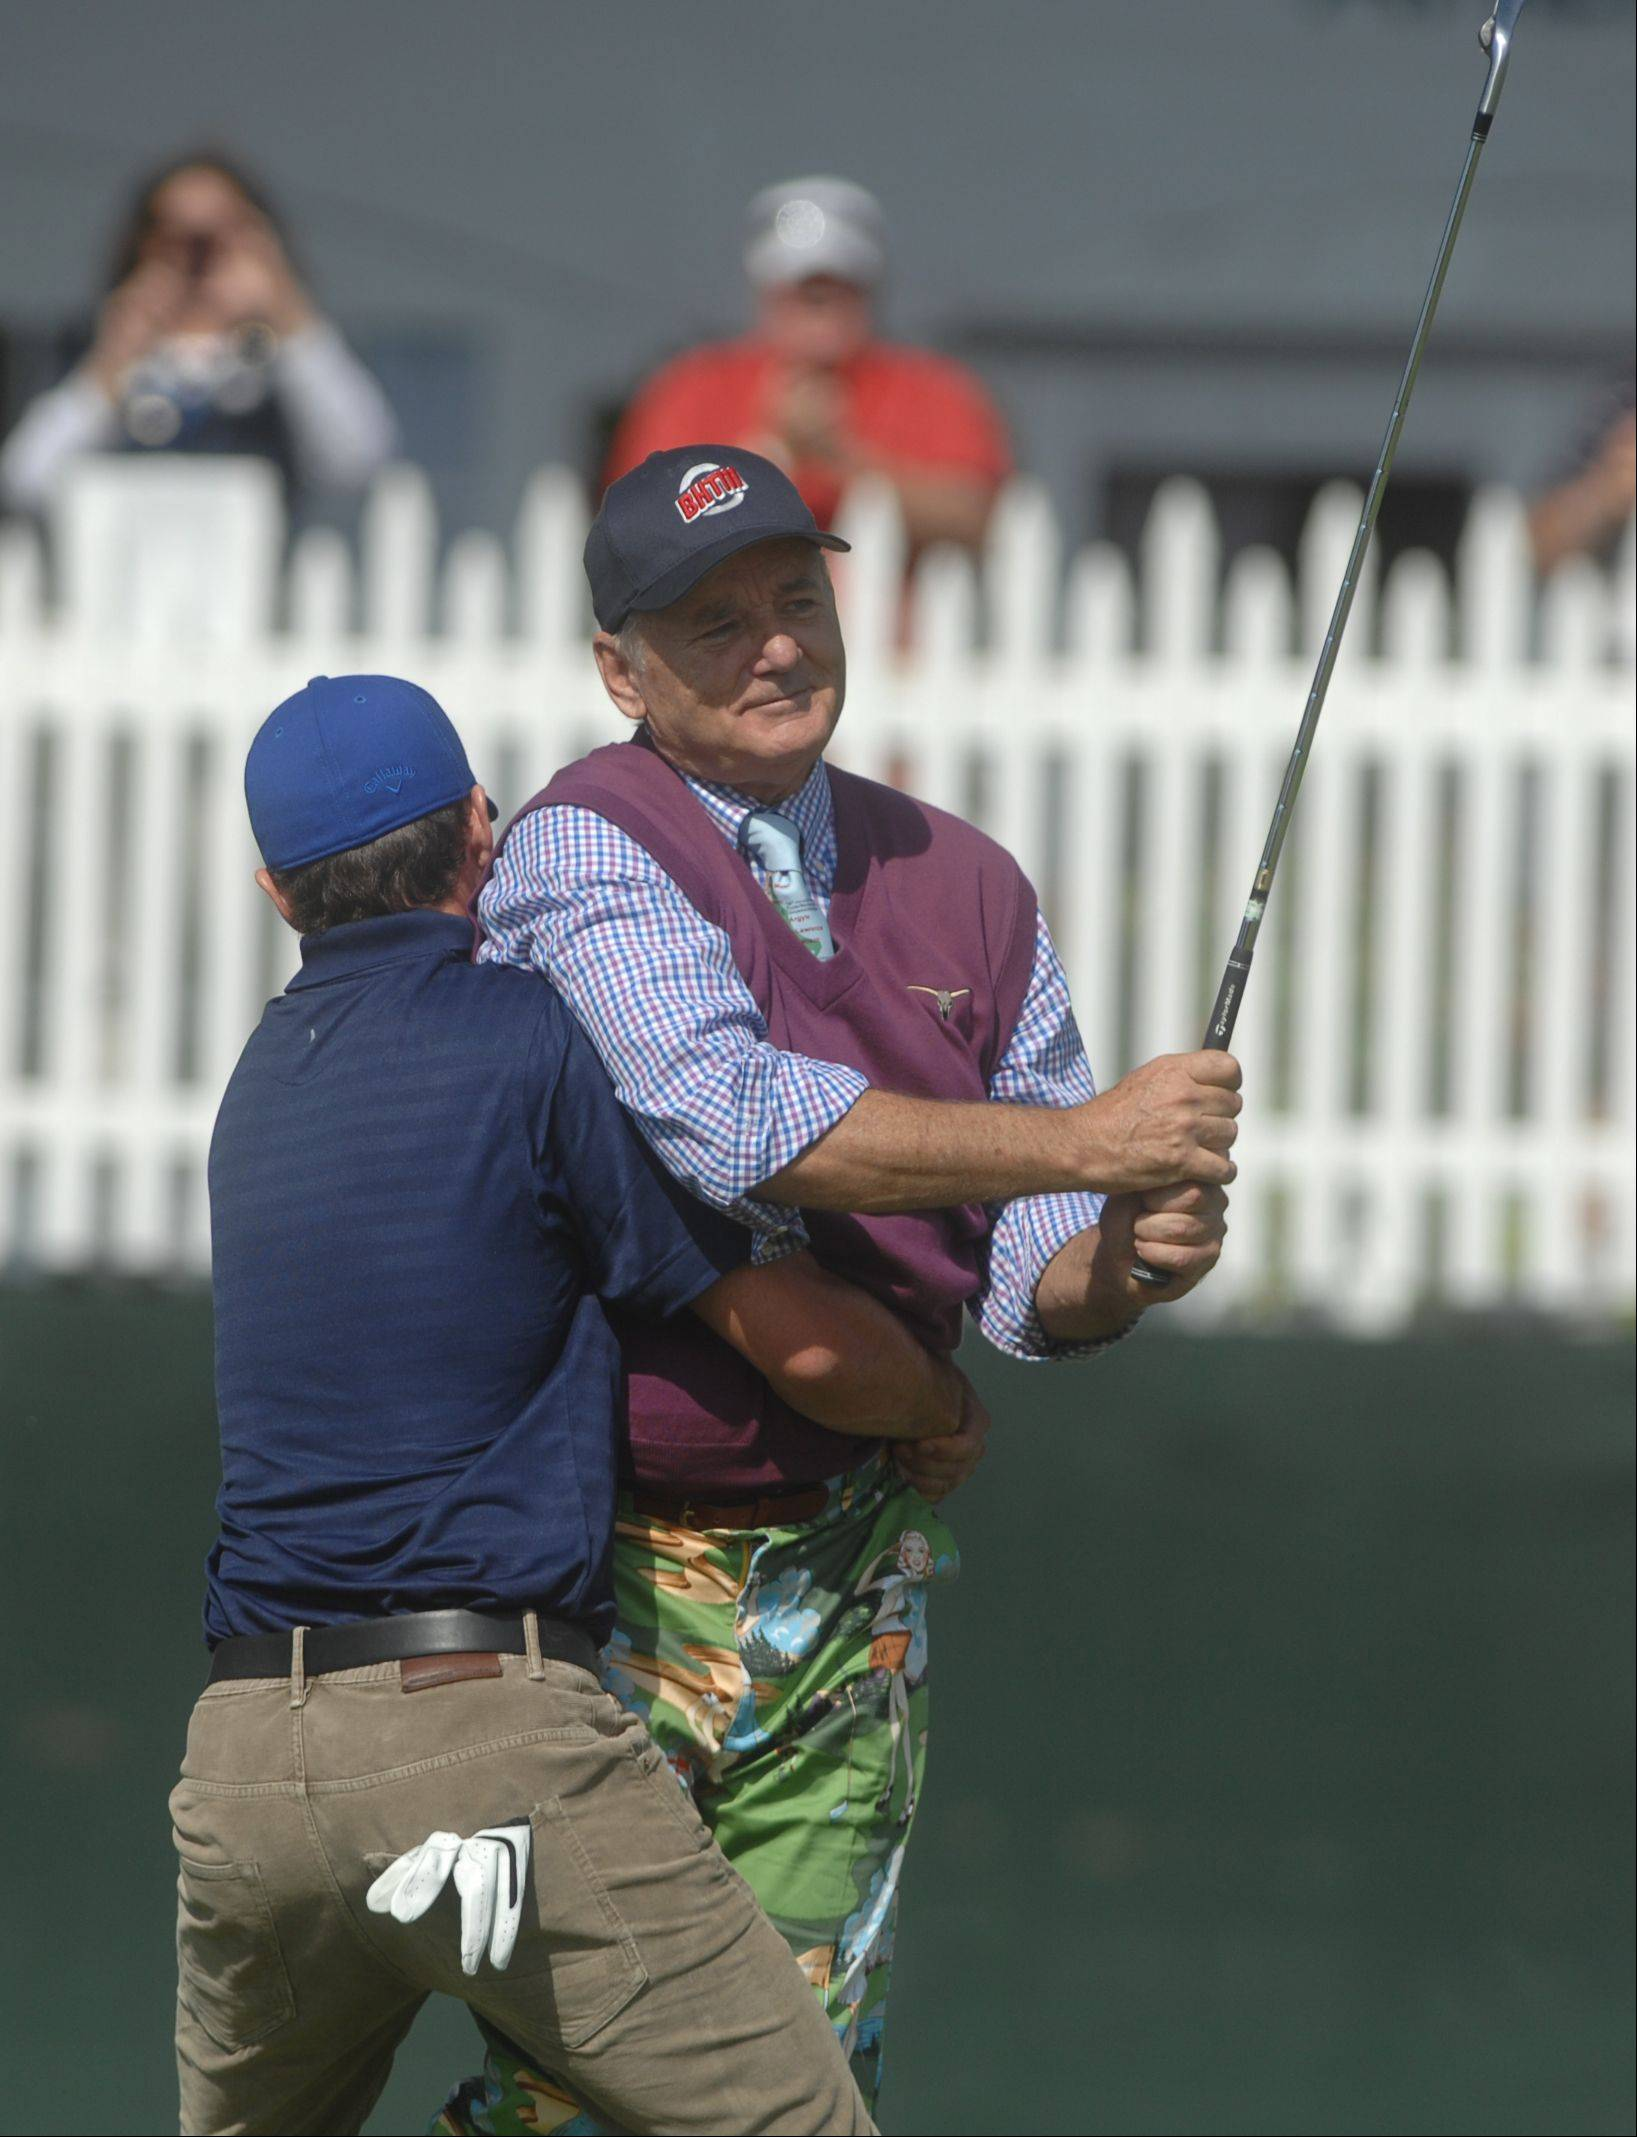 Justin Timberlake lifts Bill Murray up after a putt on the second hole at Medinah Country Club on Tuesday.